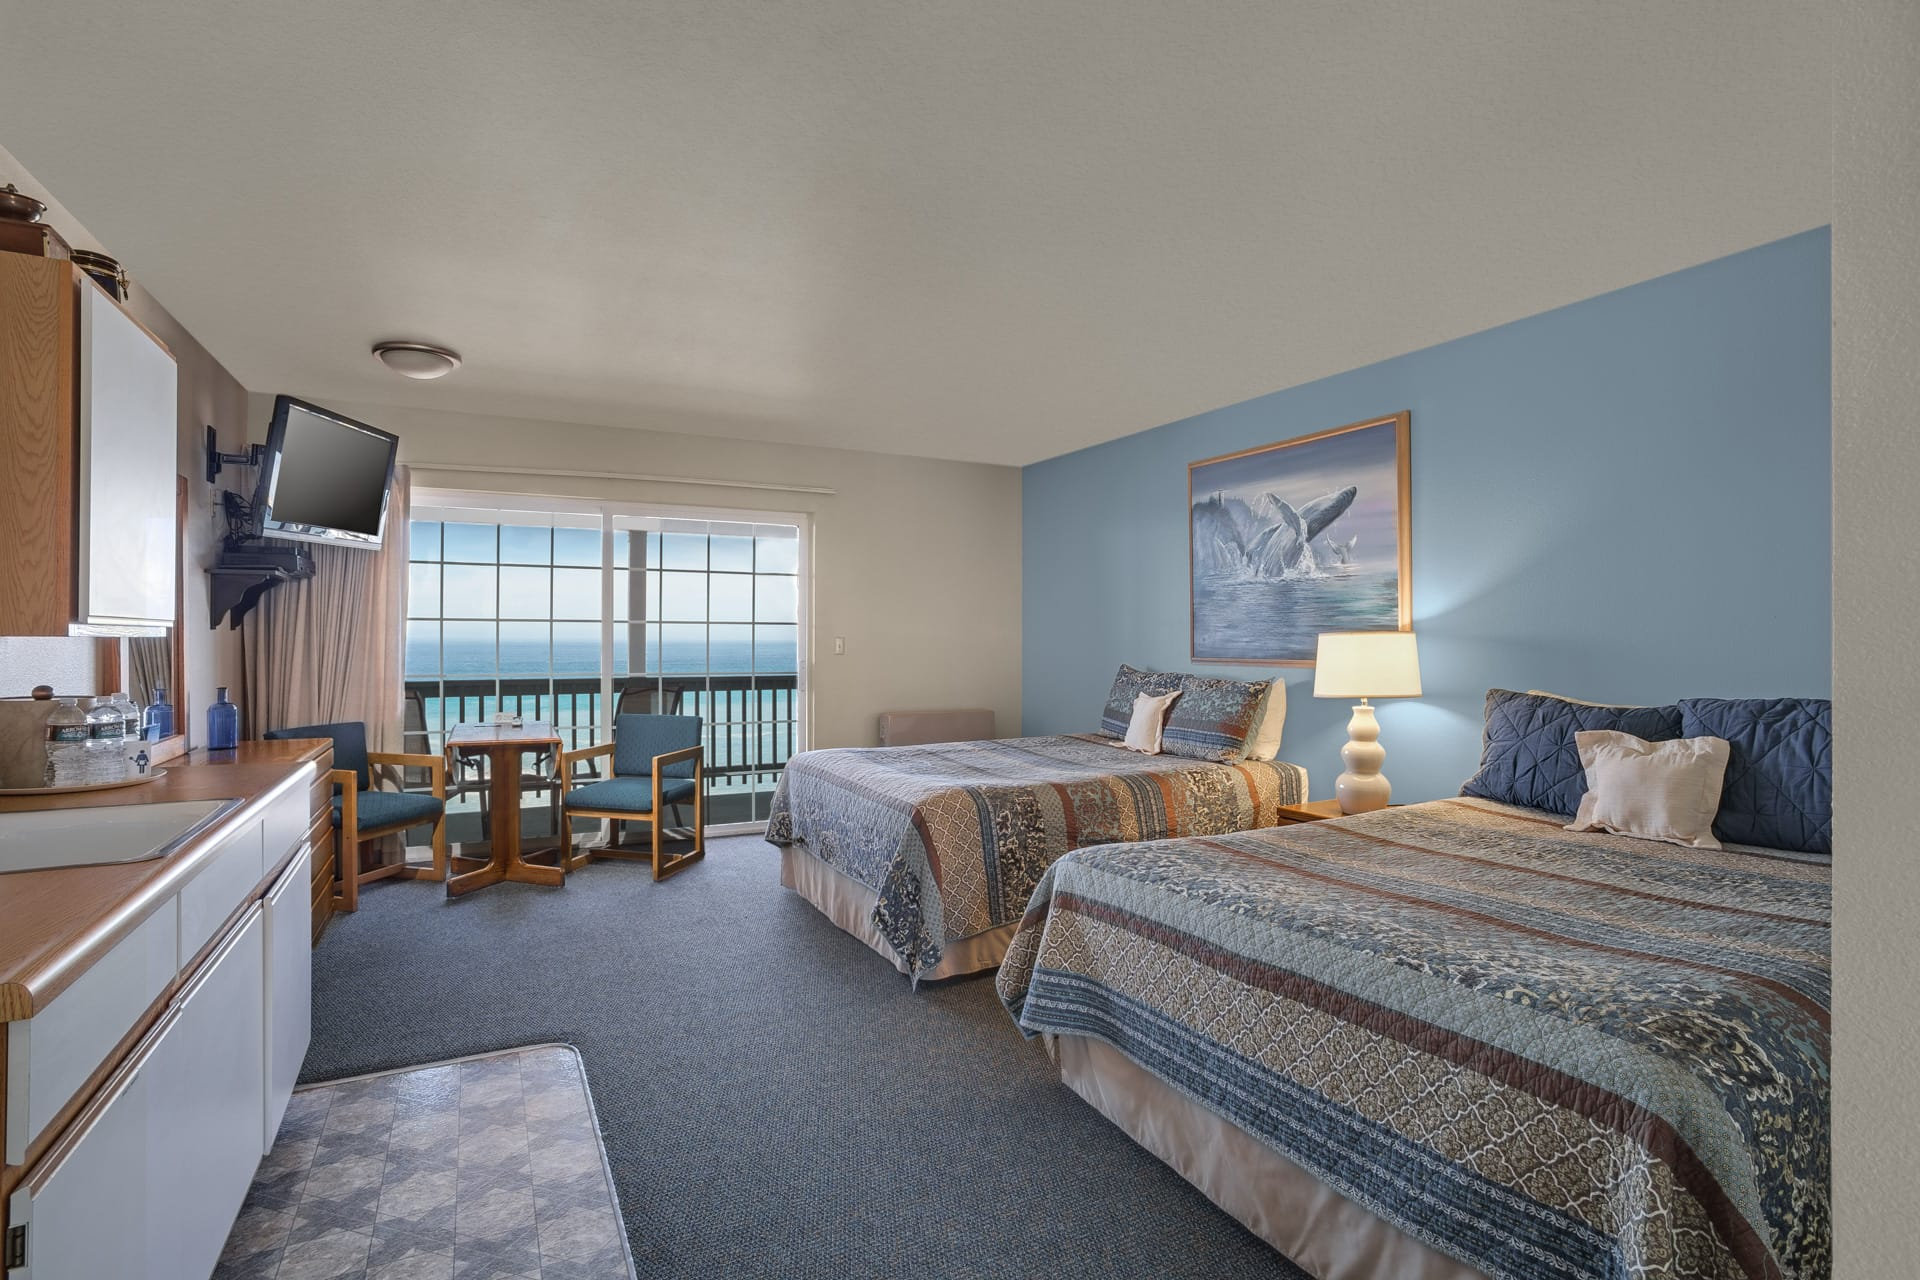 Standard Double Queen Guestroom at Shelter Cove's icon oceanfront resort hotel Inn of the Lost Coast.